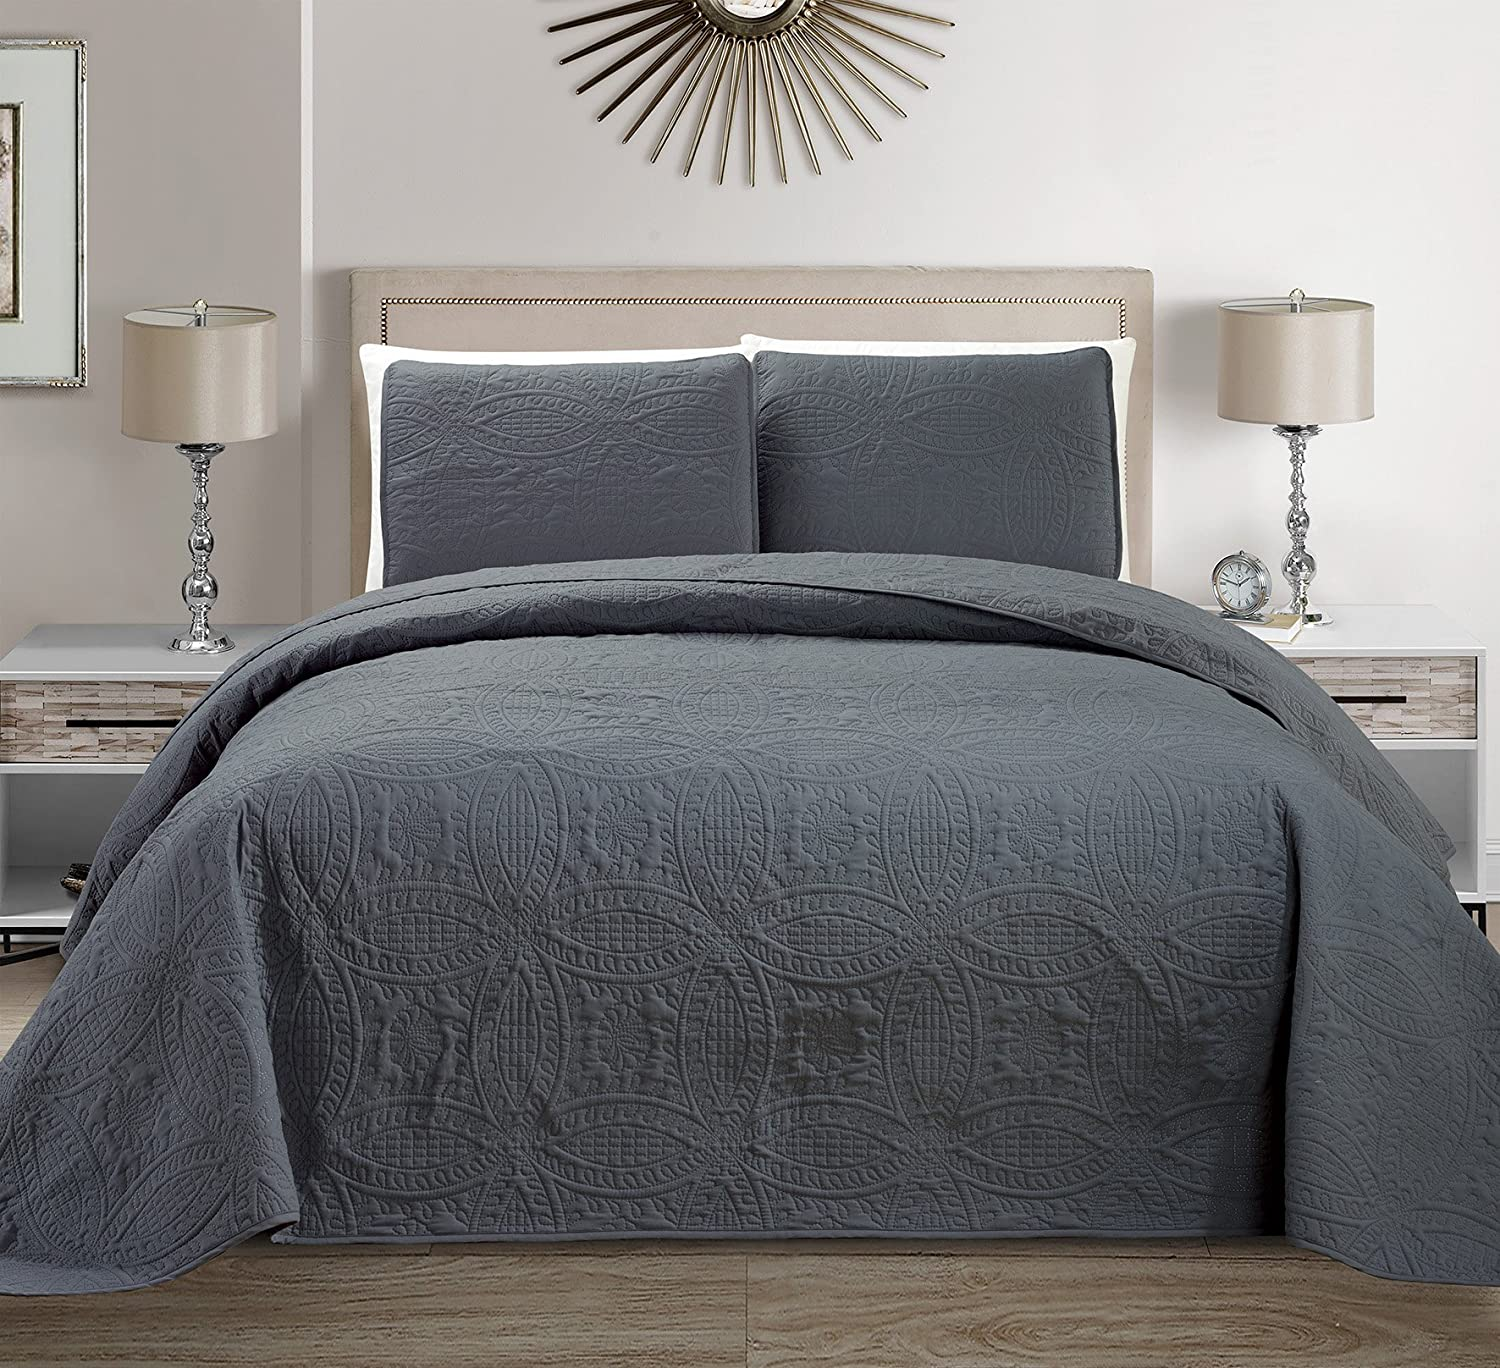 "Mk Collection 3 pc Solid Embossed Bedspread Bed-cover Over size Dark Grey New King/California King Over size 118"" x 106"""